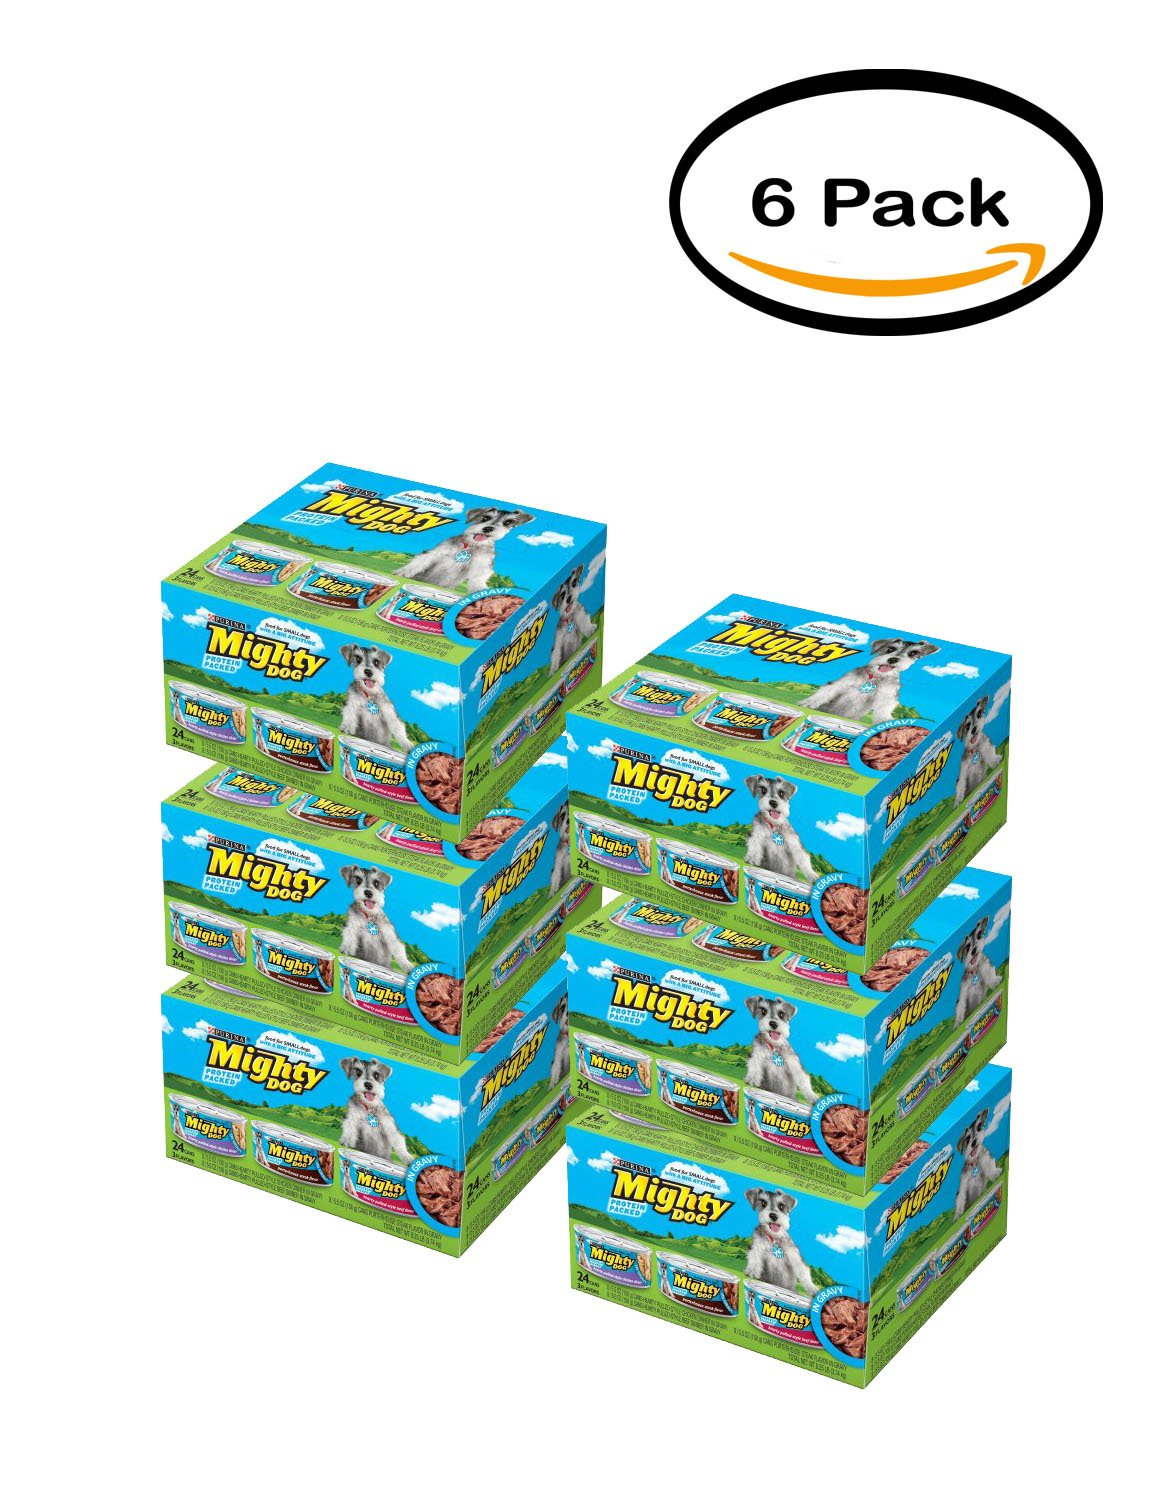 PACK OF 6 - Purina Mighty Dog Hearty Pulled-Style Chicken Dinner in Gravy/Hearty Pulled-Style Beef Dinner in Gravy/Porterhouse Steak Flavor in Gravy Dog Food Variety Pack 12-5.5 oz. Cans